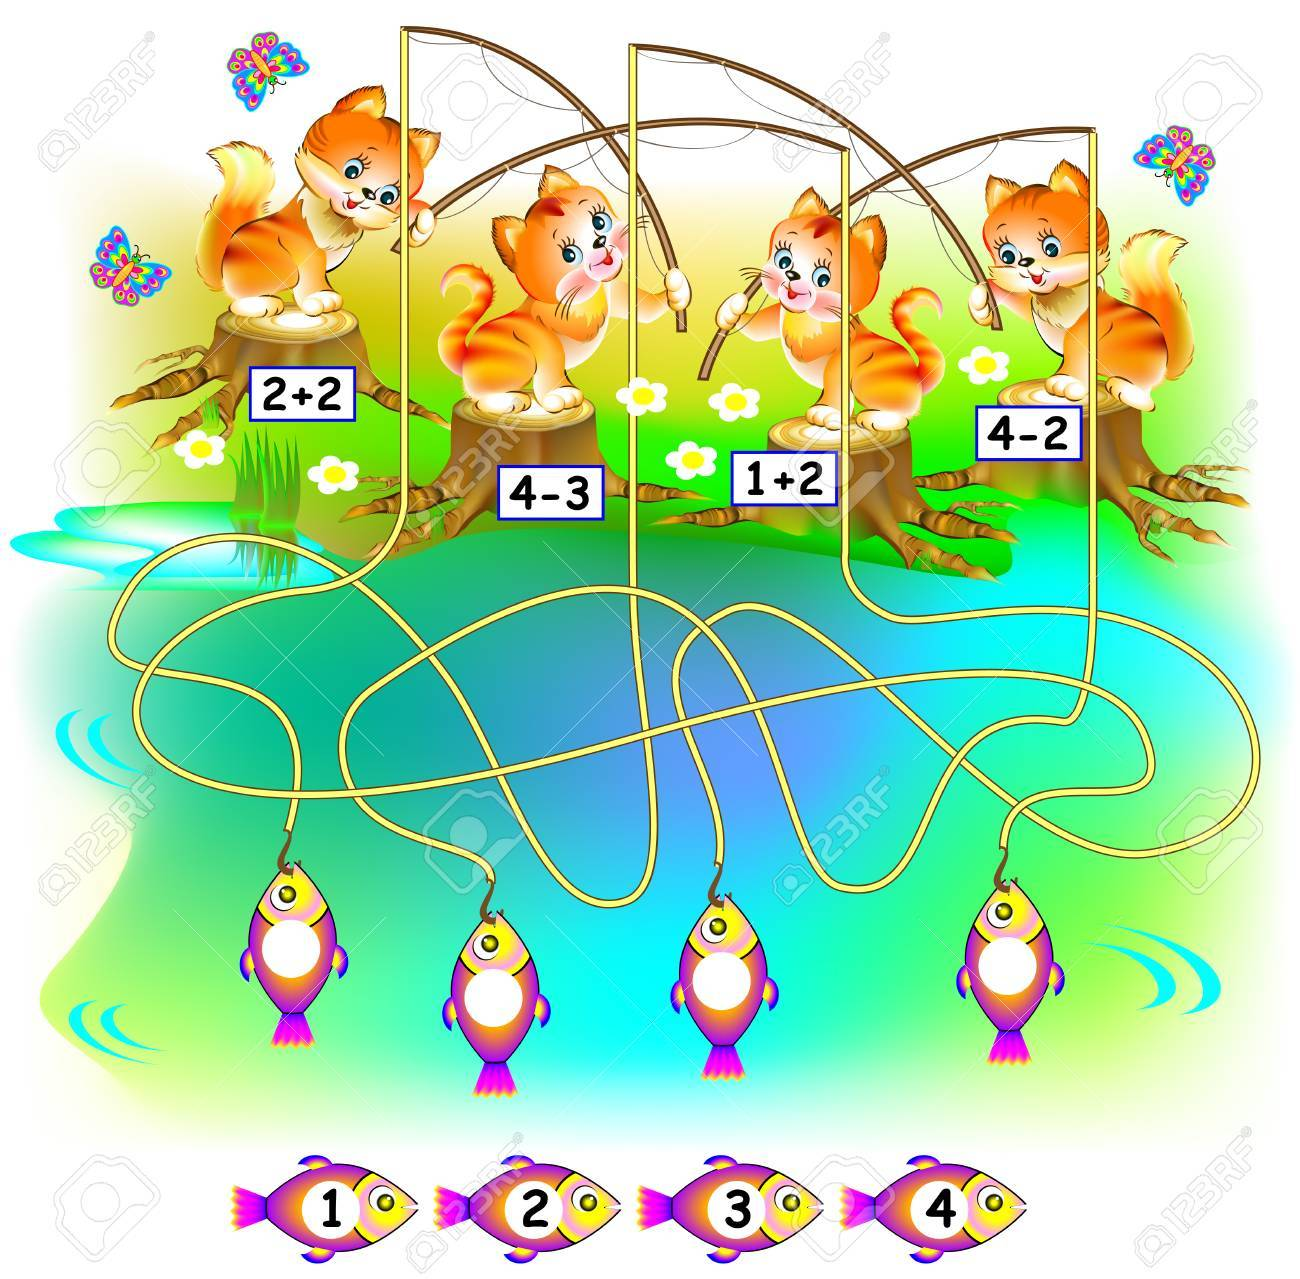 Exercises for children. Need to find the fish for each kitten and to write the numbers in the relevant circles. - 88274765